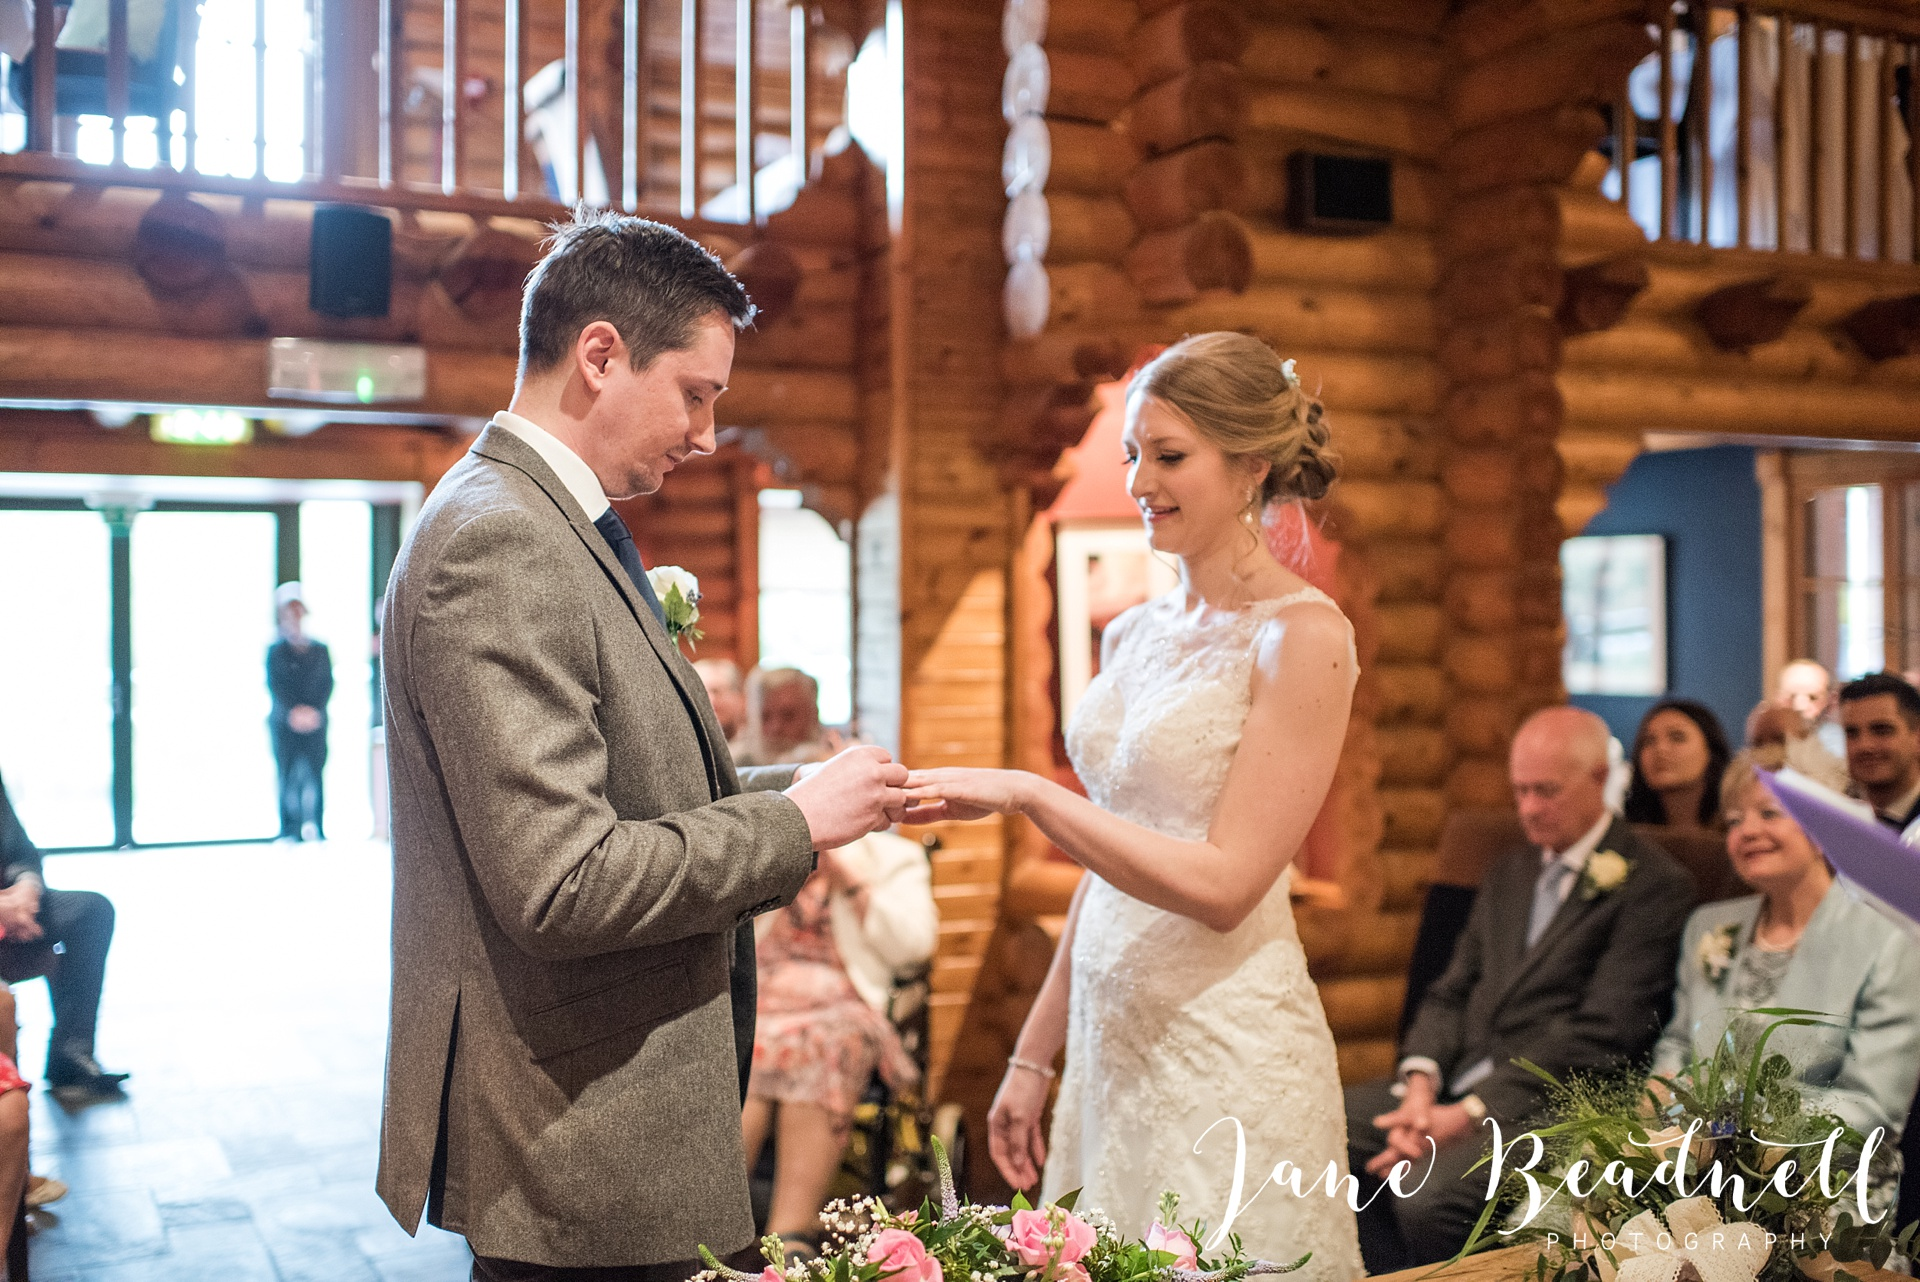 Otley Chevin Lodge wedding photography by Jane Beadnell Photography Leeds_0053